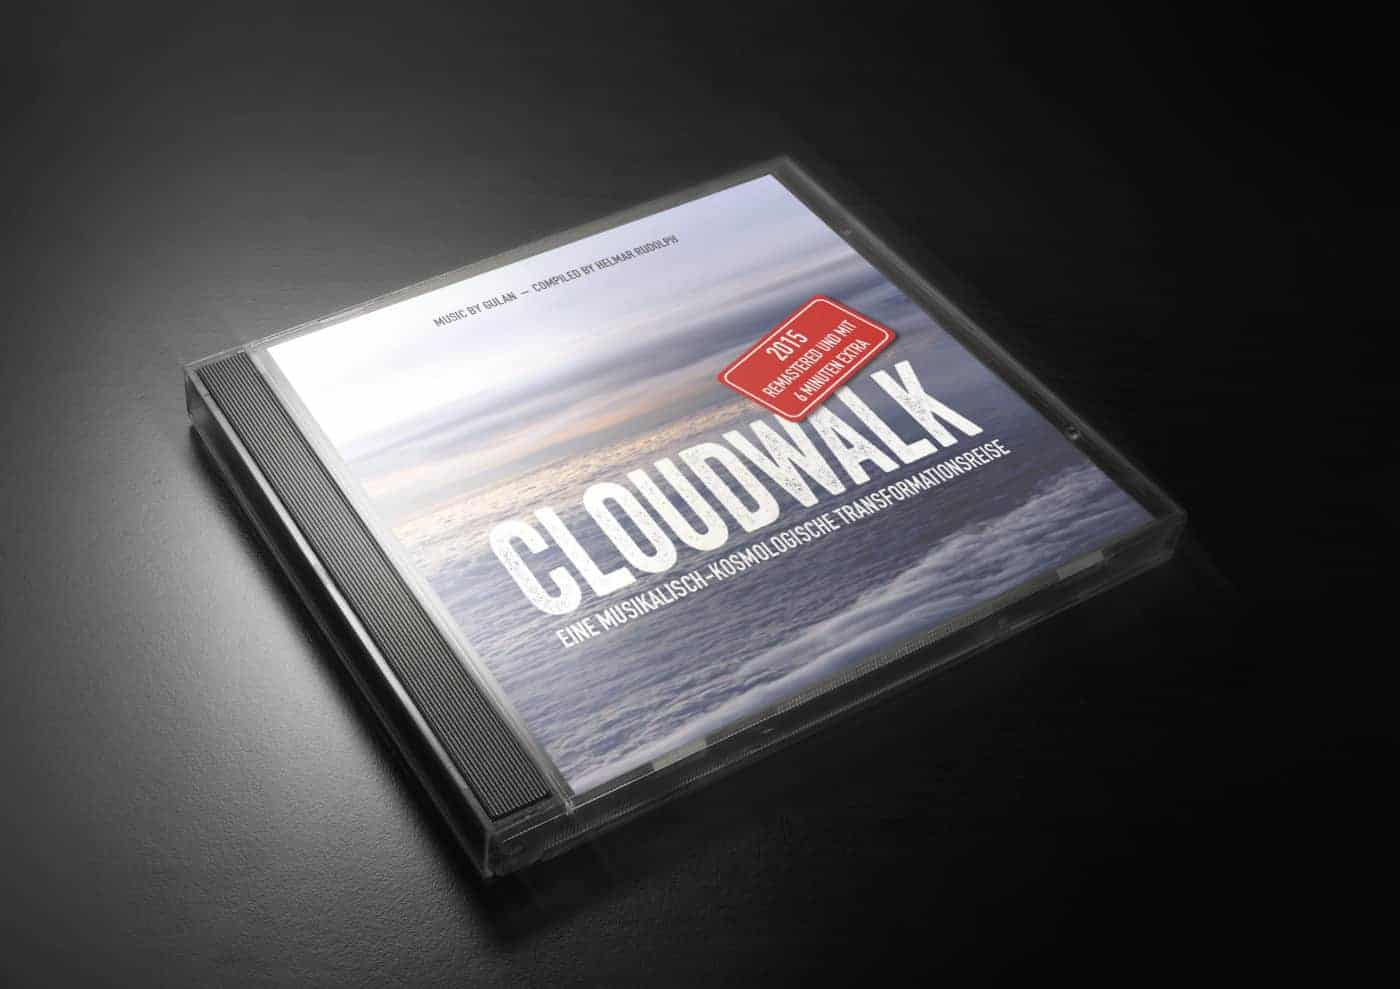 Cloudwalk Cd By Gulan